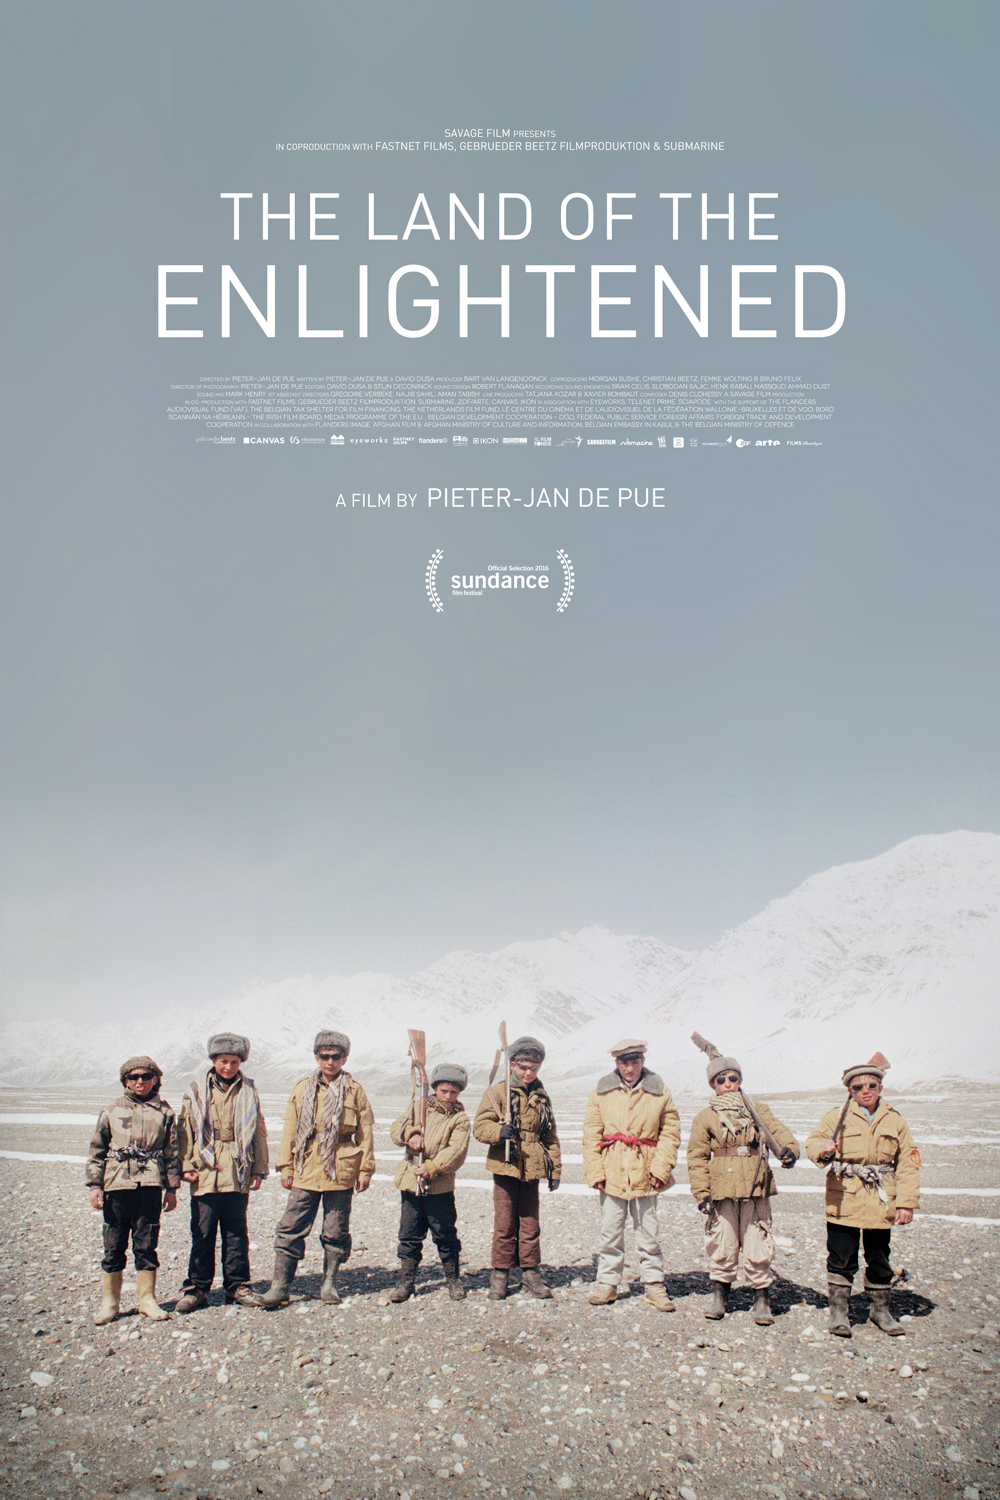 PLAKAT_THE LAND OF THE ENLIGHTED_2015_gebrueder beetz filmproduktion.jpg